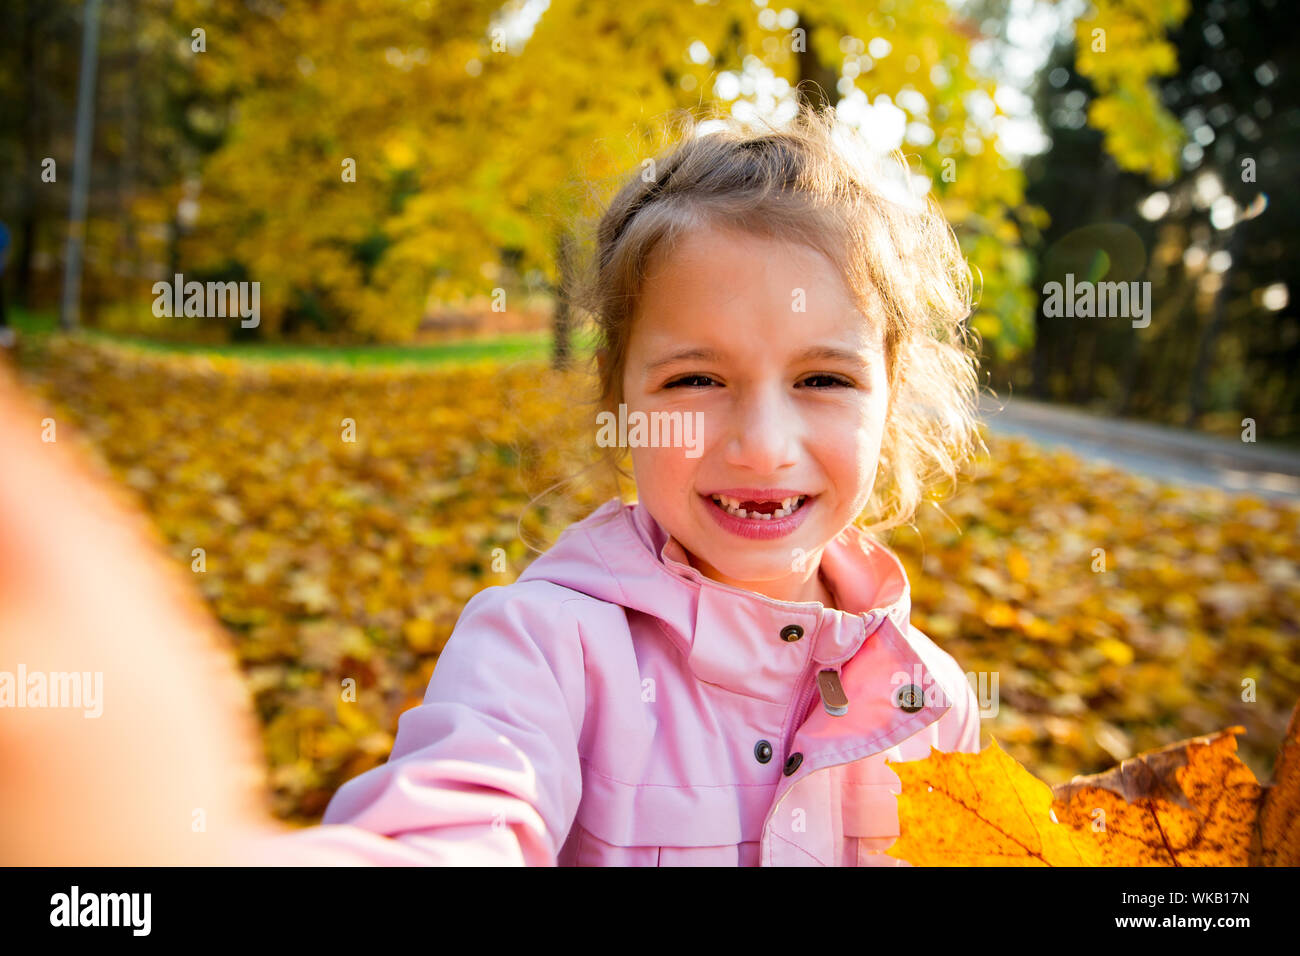 Cute little girl with missing teeth taking selfie. Happy child laughing and smiling. Sunny autumn forest, sun beam. Stock Photo